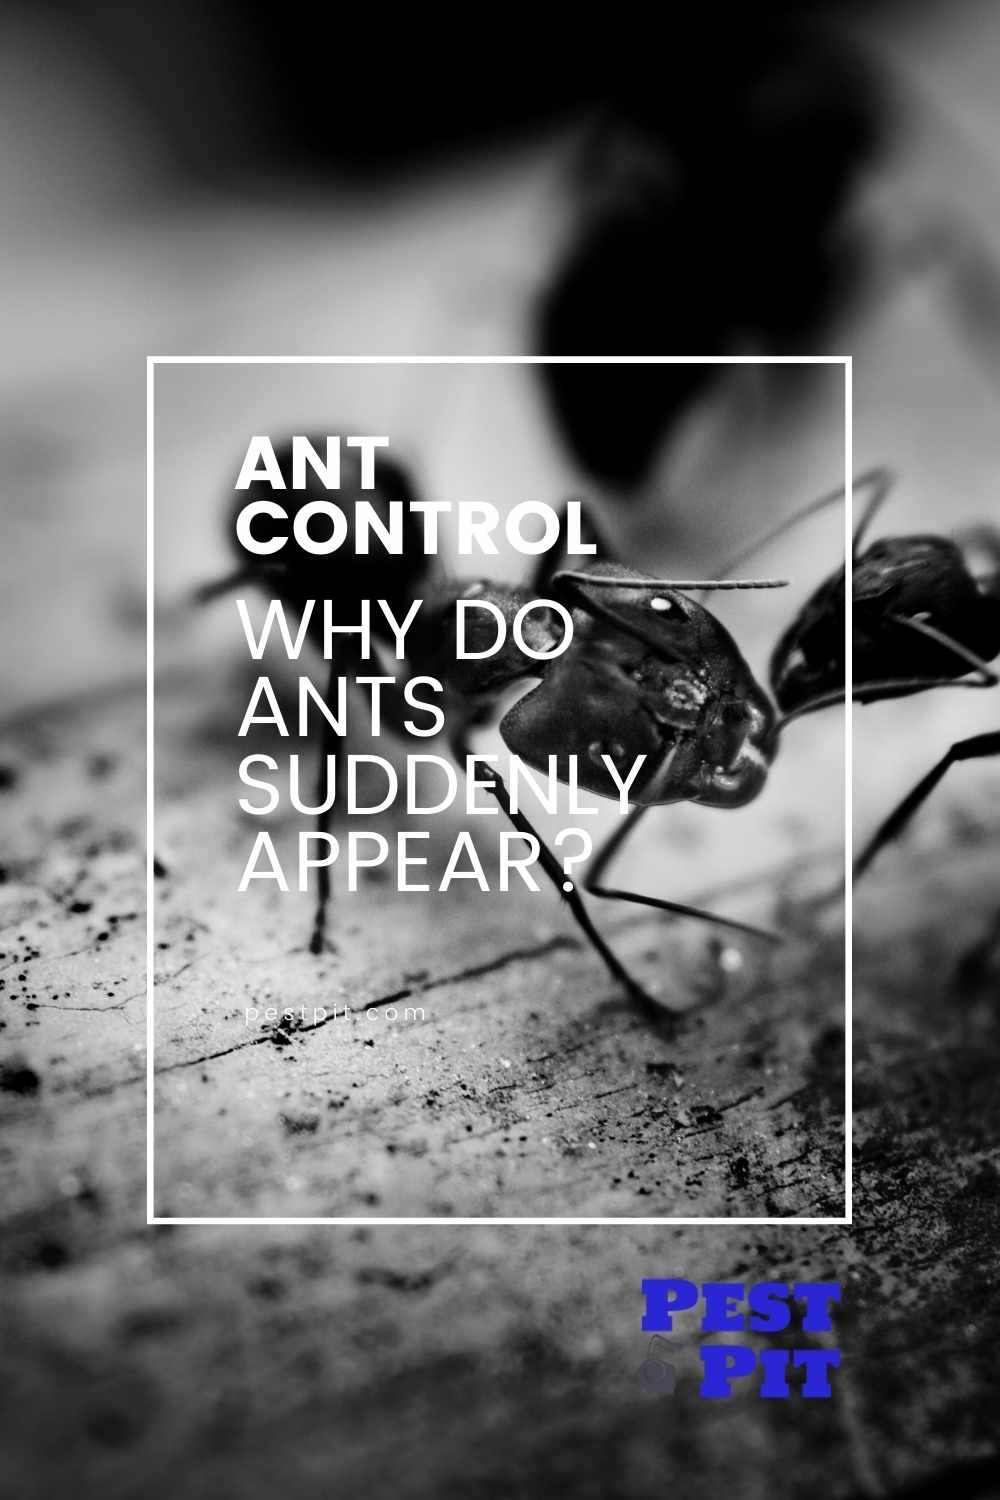 Why Do Ants Suddenly Appear